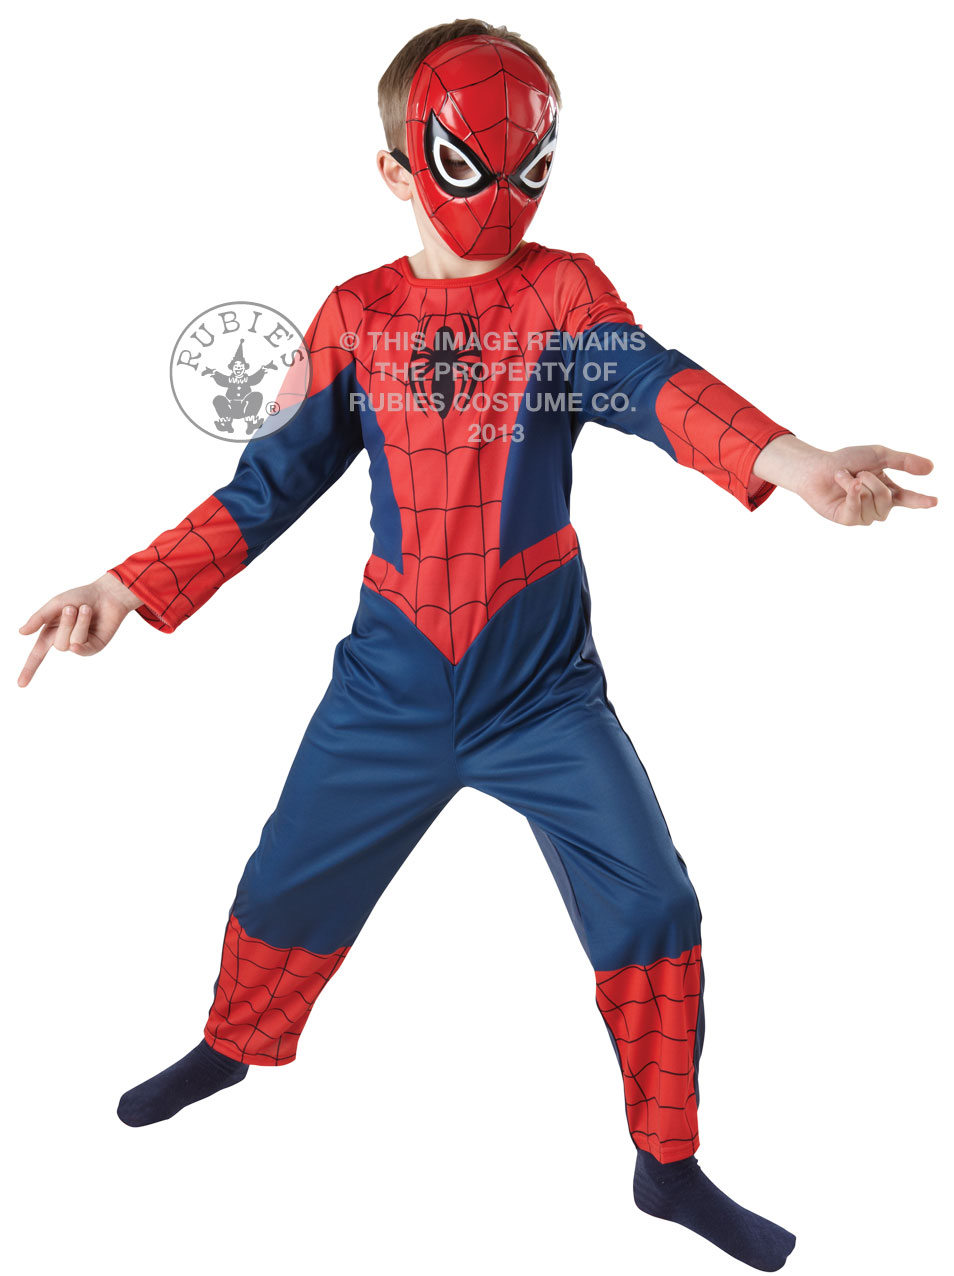 neu f r kinder spiderman luxus kost m held verkleidung maske 7 8 jahre alt. Black Bedroom Furniture Sets. Home Design Ideas